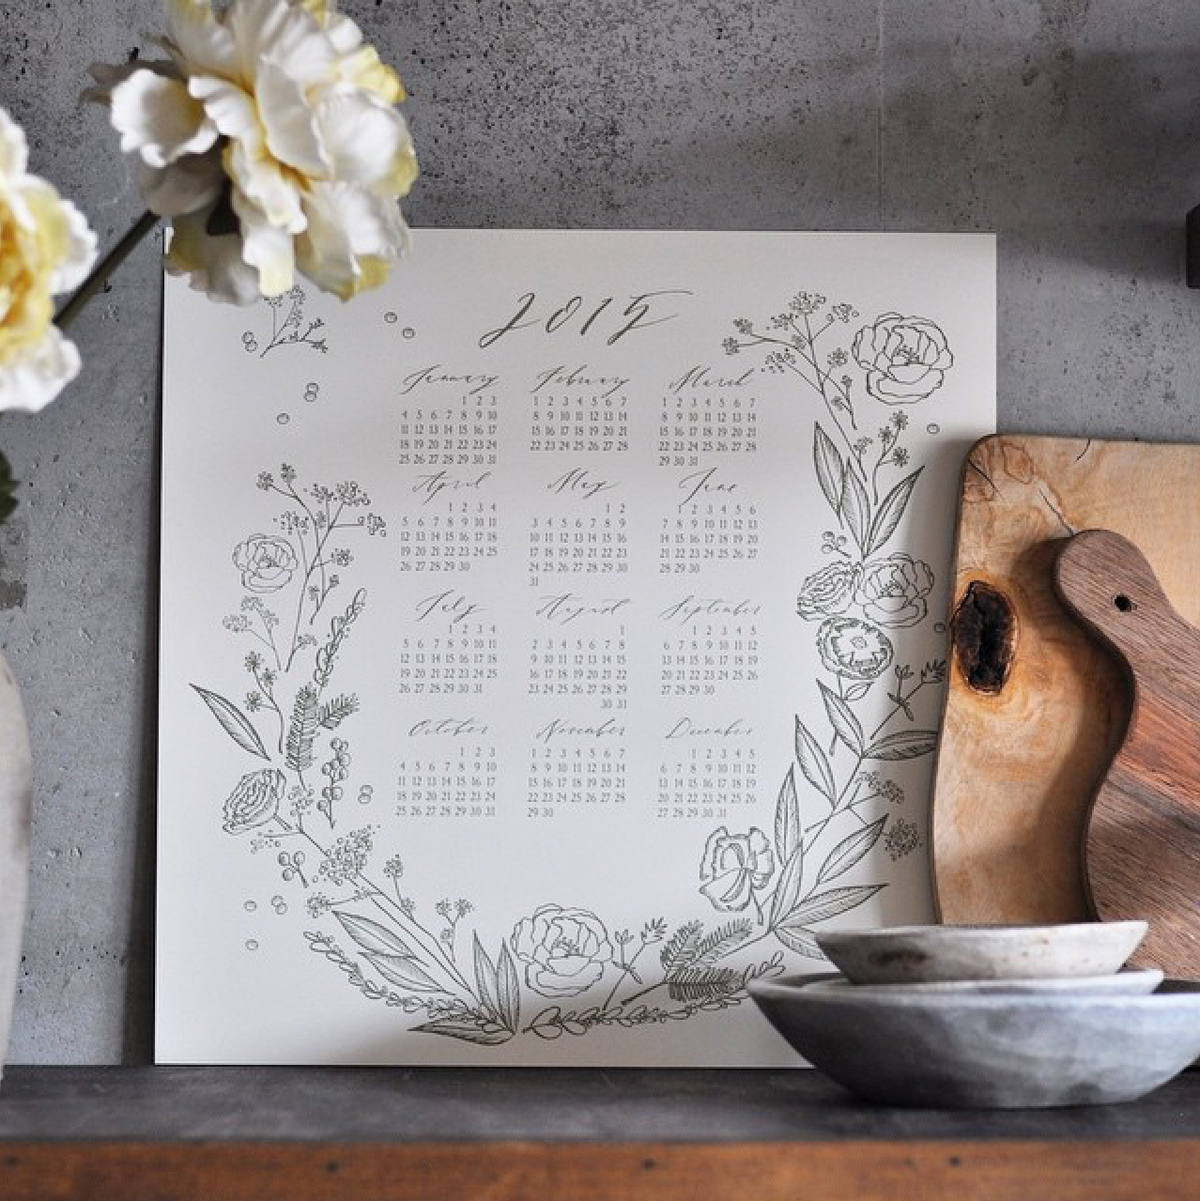 Image and letterpress calendar by Abany Bauer of  Brown Linen Press